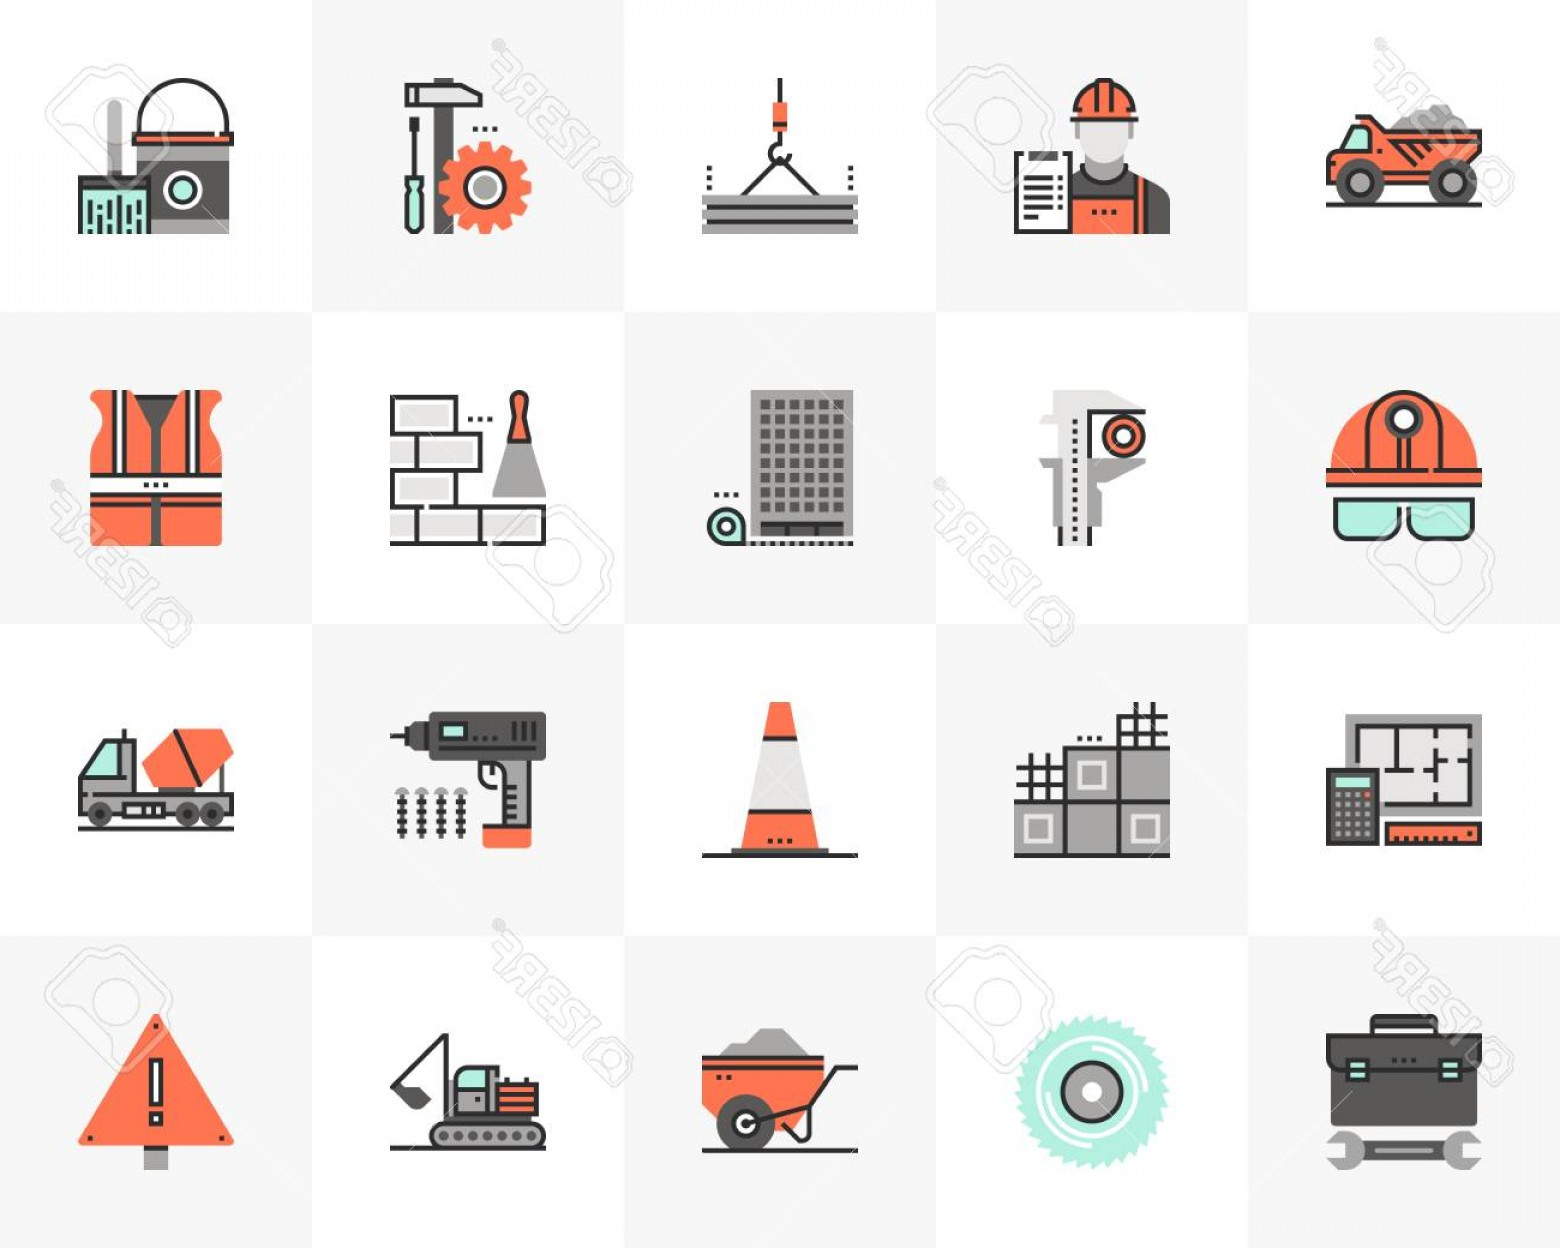 Vector Graphic Of Civil Engineering: Photostock Vector Flat Line Icons Set Of Construction Building Civil Engineering Unique Color Flat Design Pictogram Wi